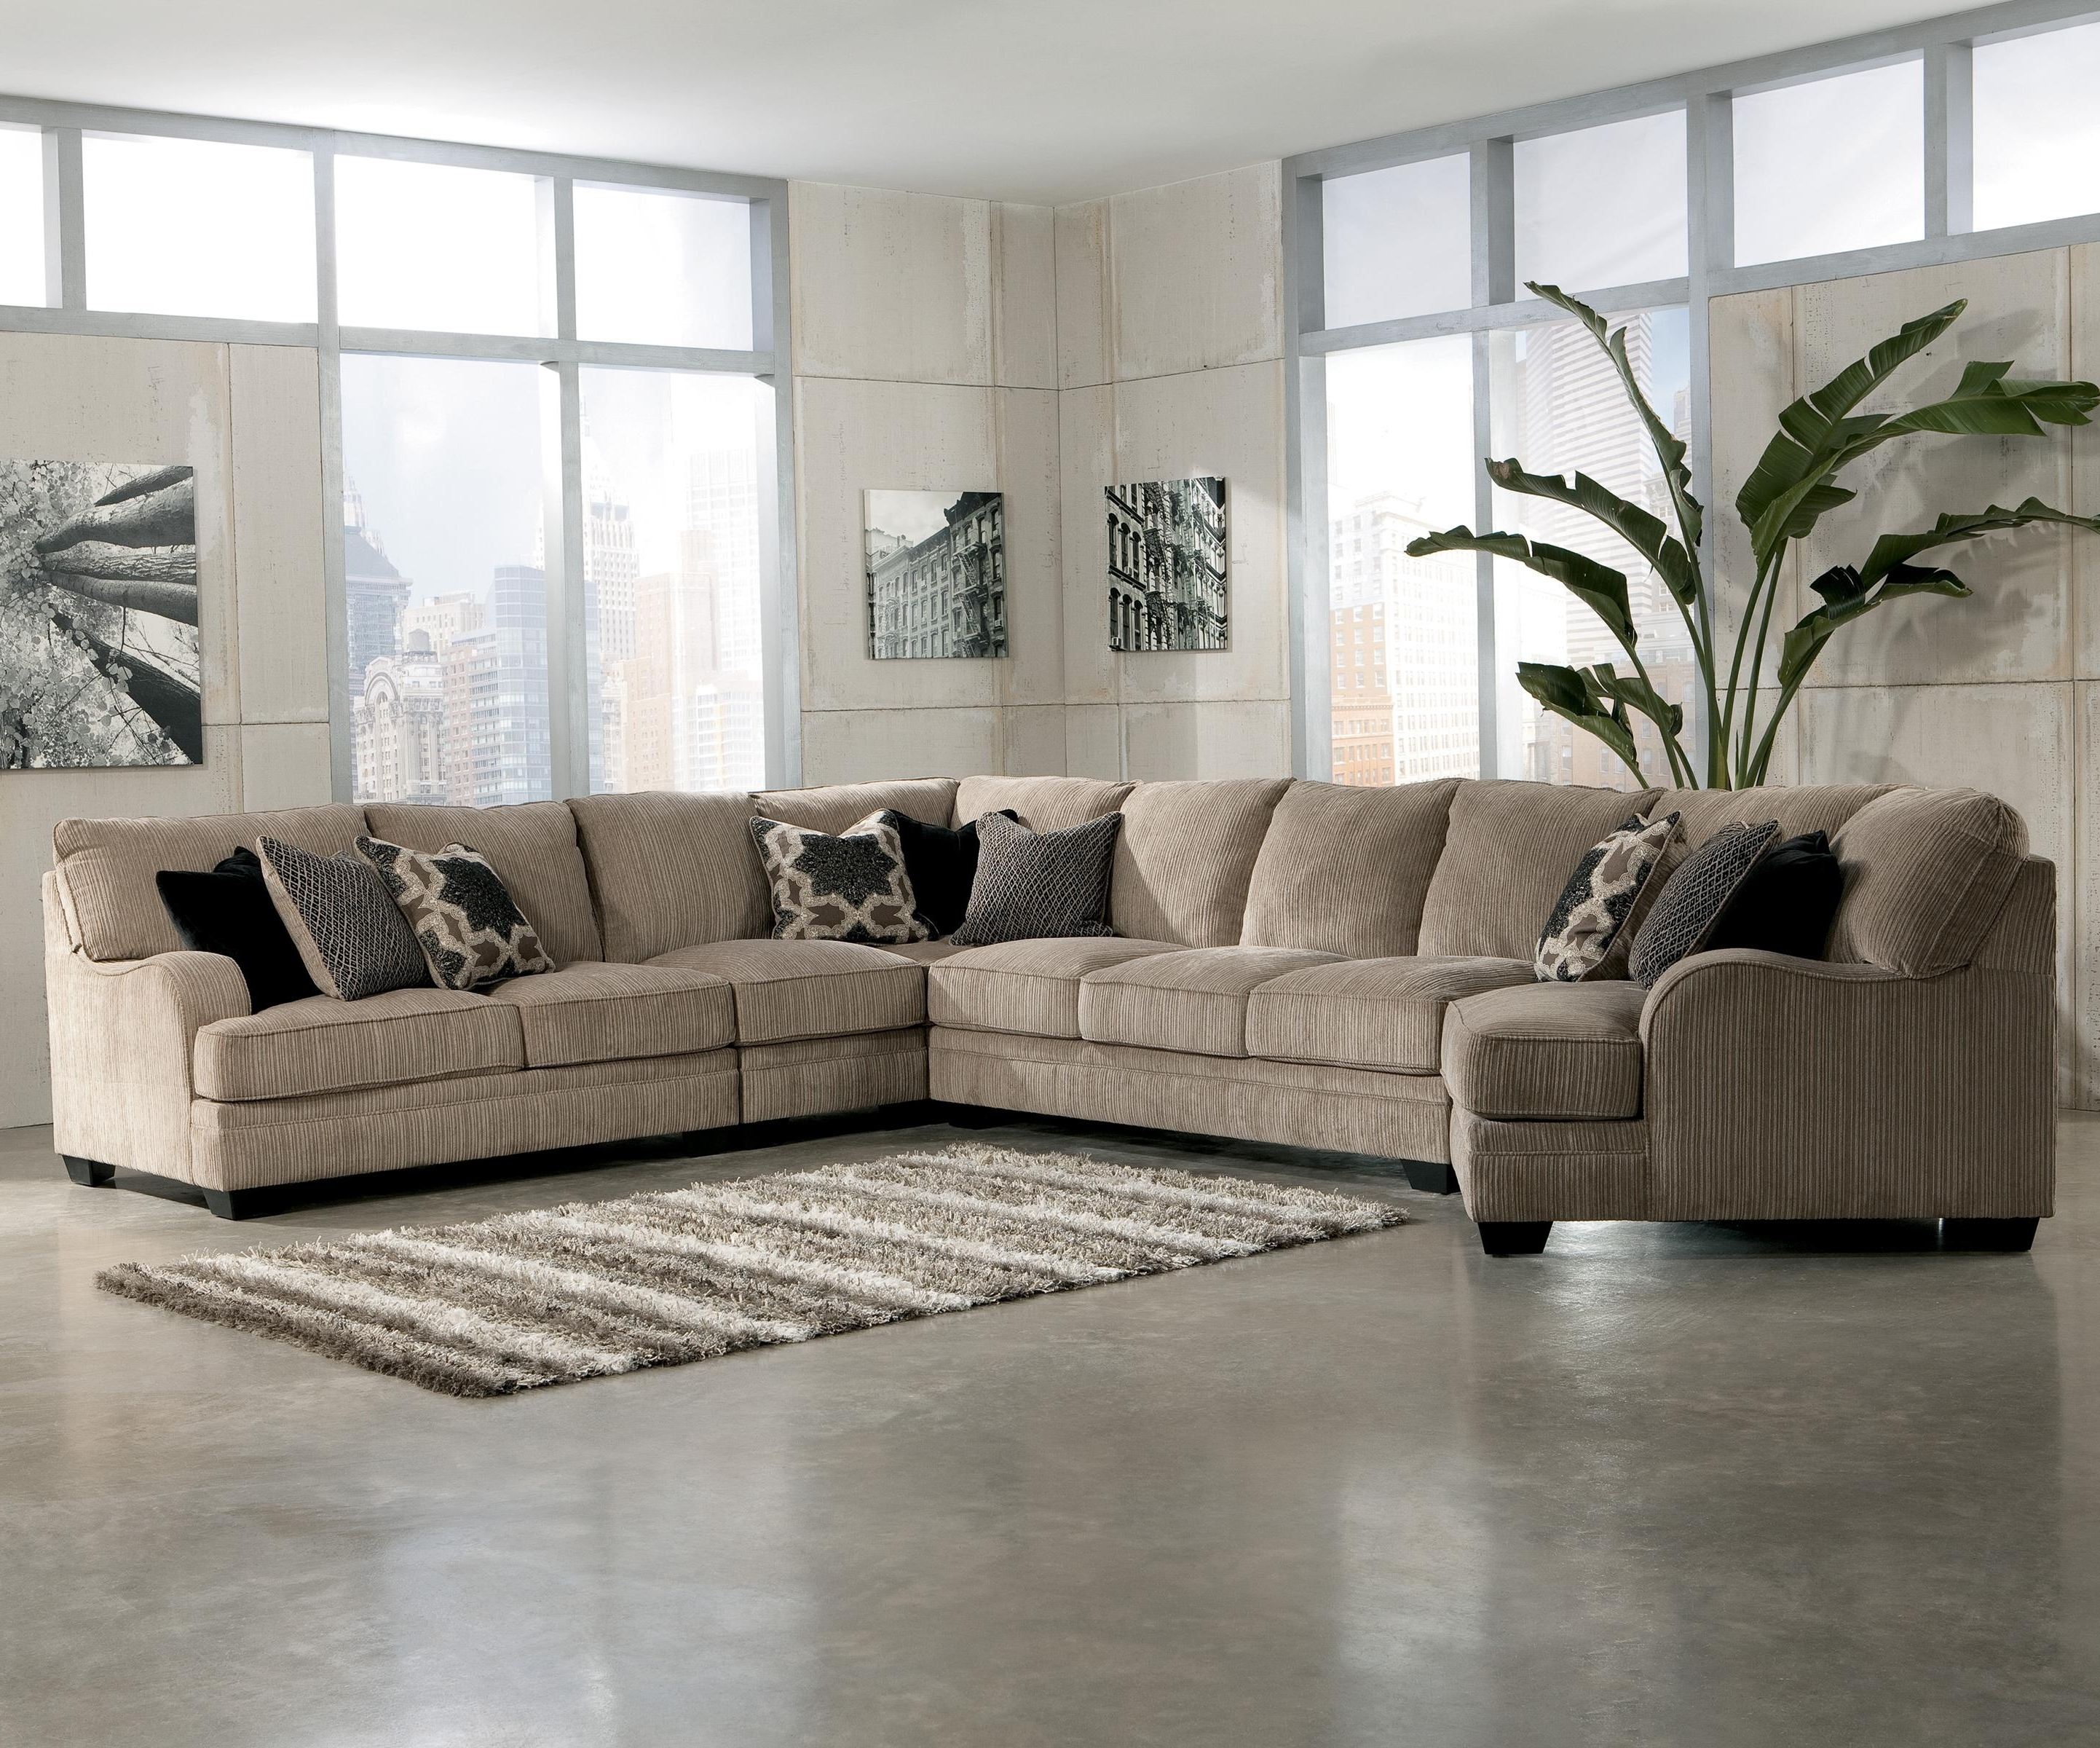 Well Known Knoxville Tn Sectional Sofas Pertaining To Nifty Sectional Sofas Knoxville Tn 15 On Fabulous Inspirational (View 20 of 20)